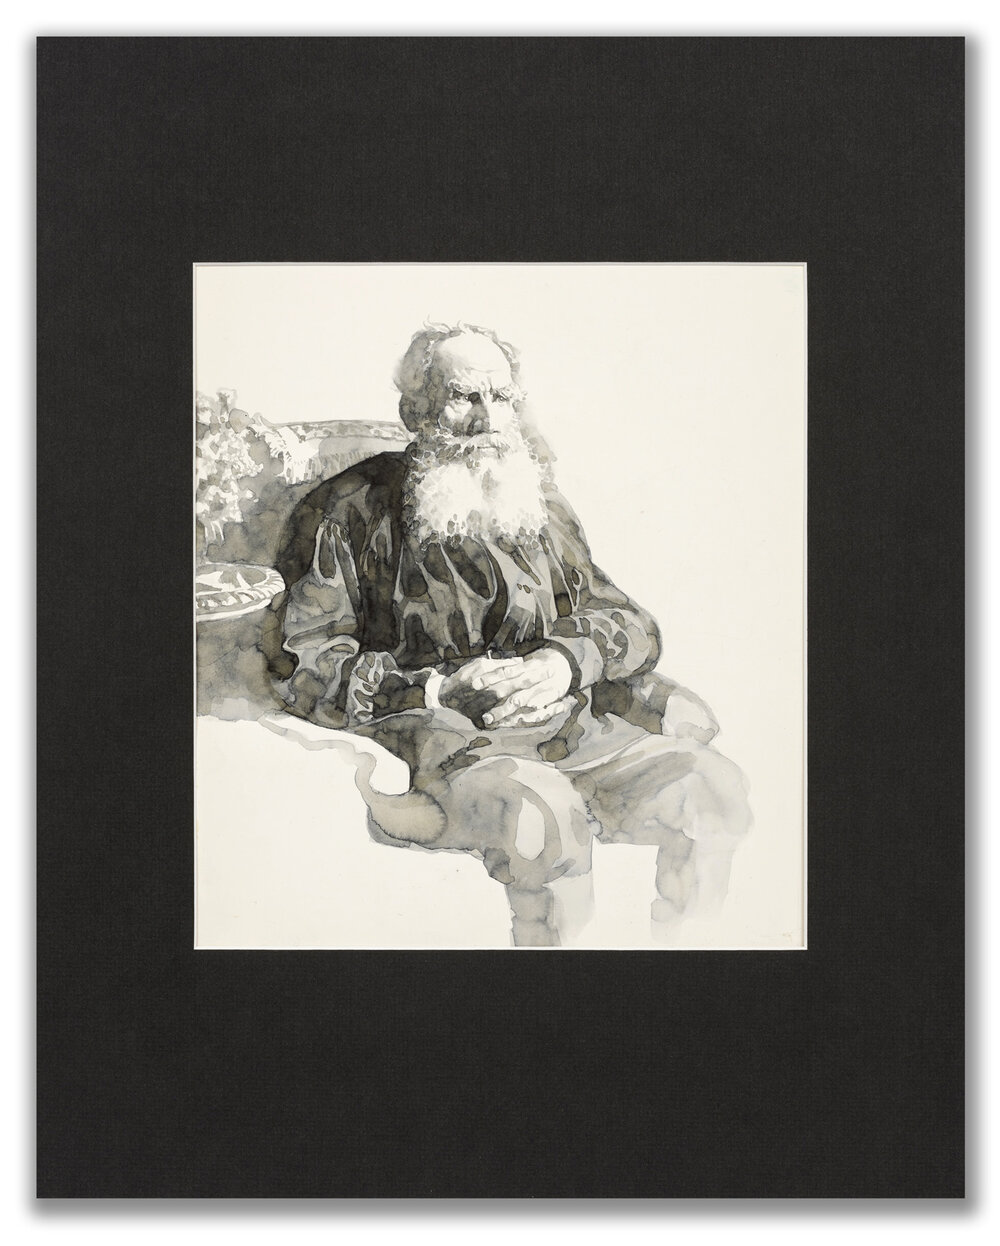 Michael Leonard, (British b.1933), A Good Age; Tolstoy, 1977.